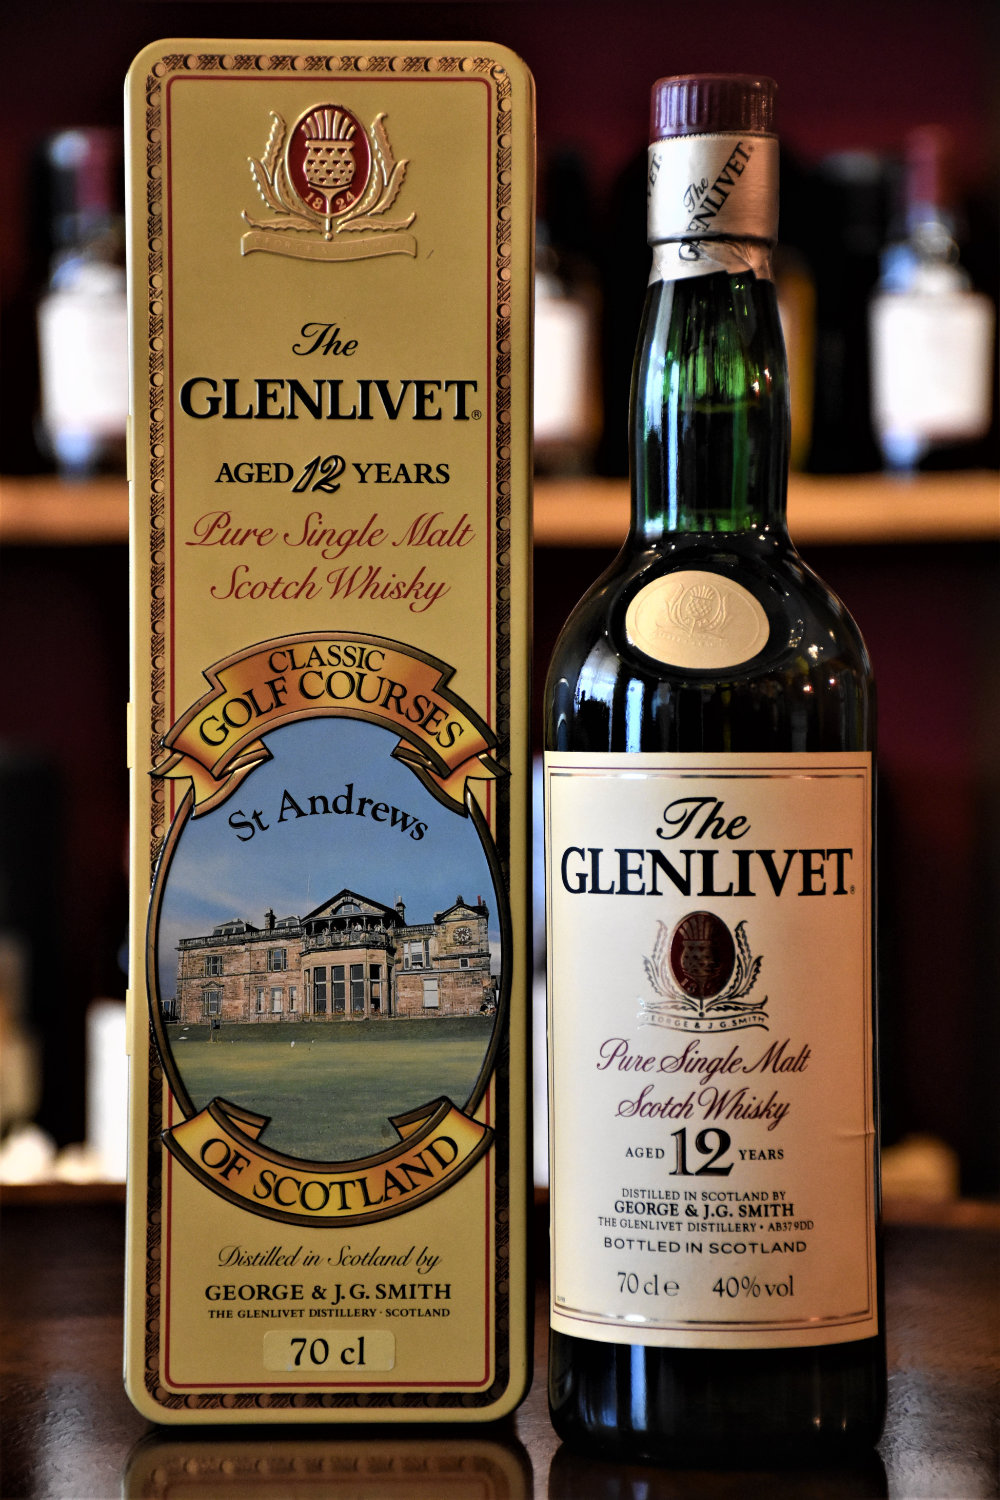 Glenlivet 12 y.o. Golf Courses of Scotland, St. Andrews - Bottling 1980iger, 40% Alc.Vol., Distillery Original Bottling